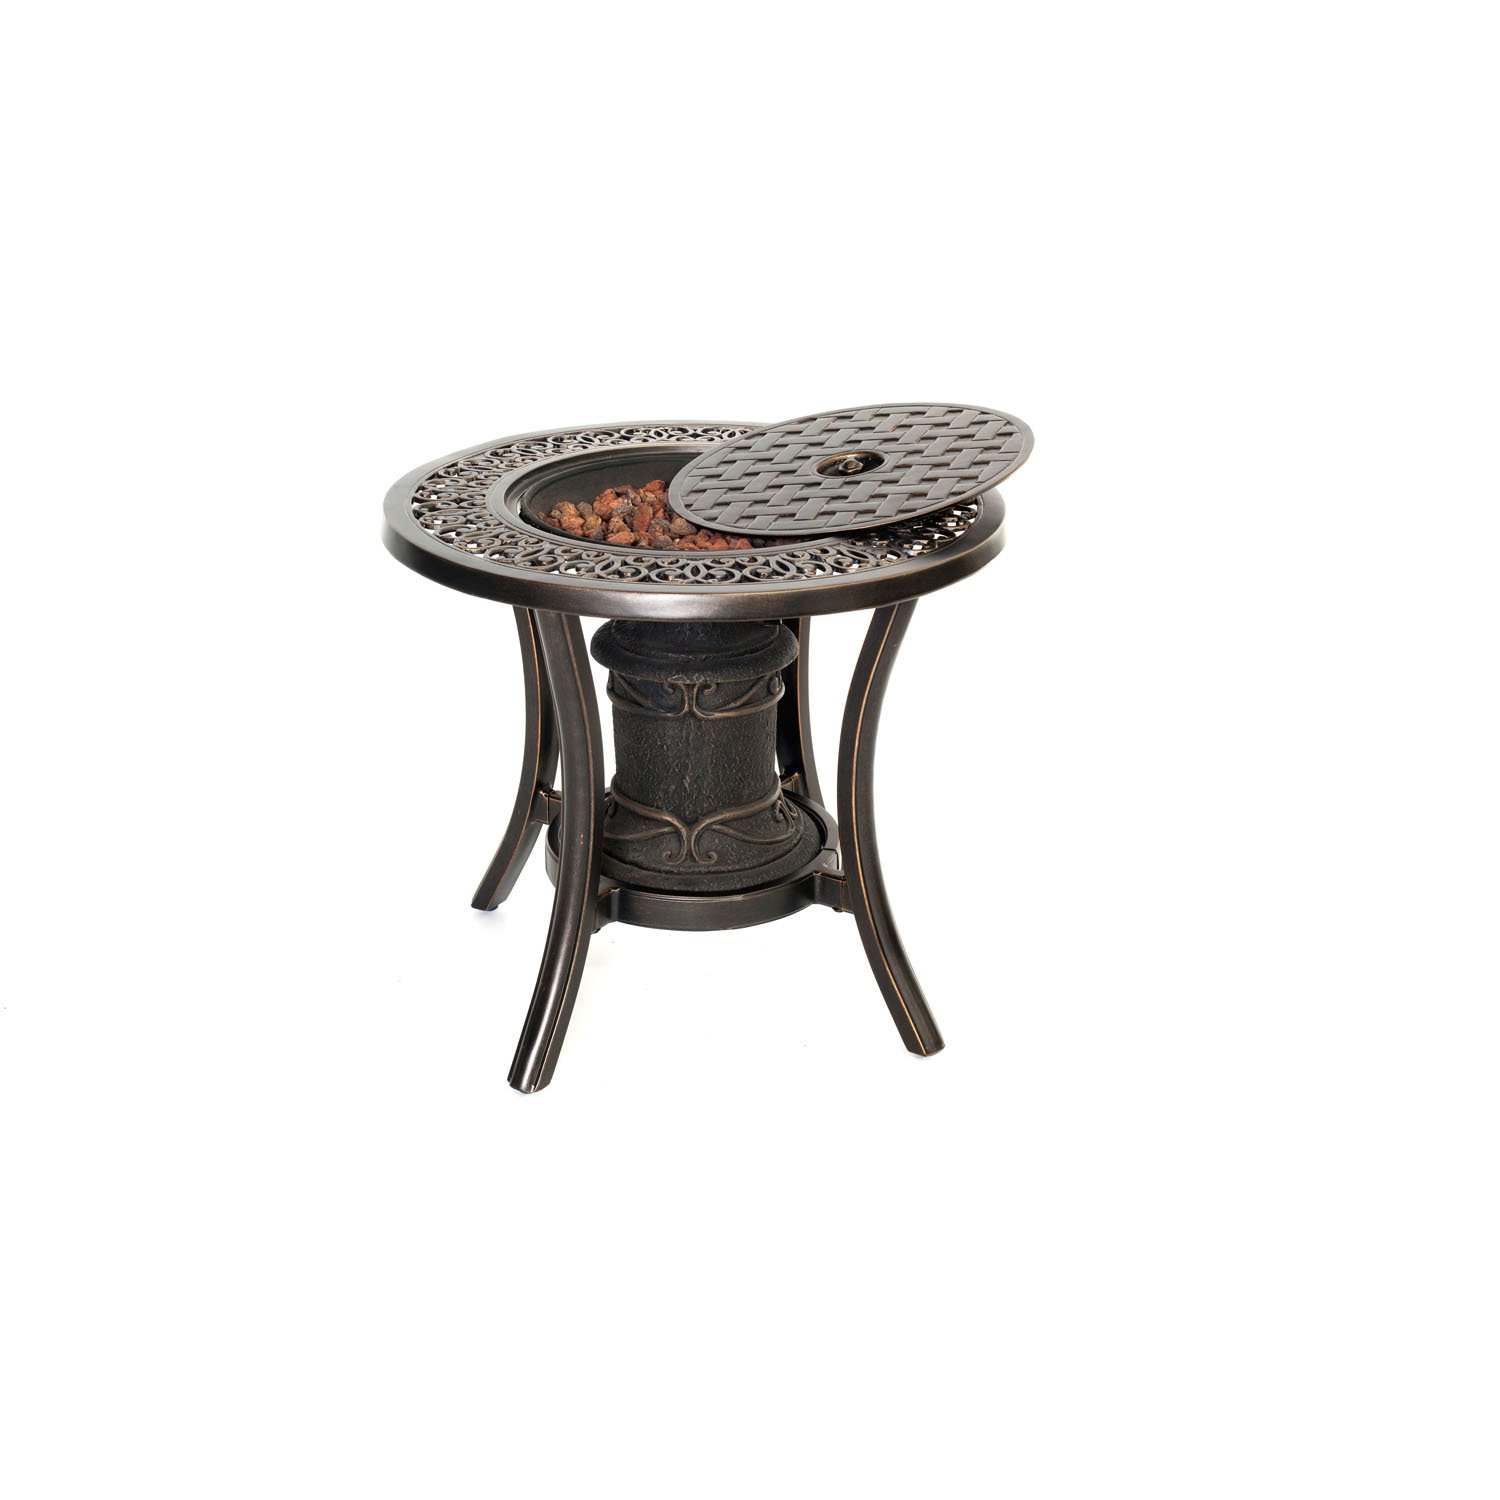 Amazon round side table - Amazon Com Hanover Tradfireurn 10 000 Btu Fire Pit Side Table Patio Lawn Garden